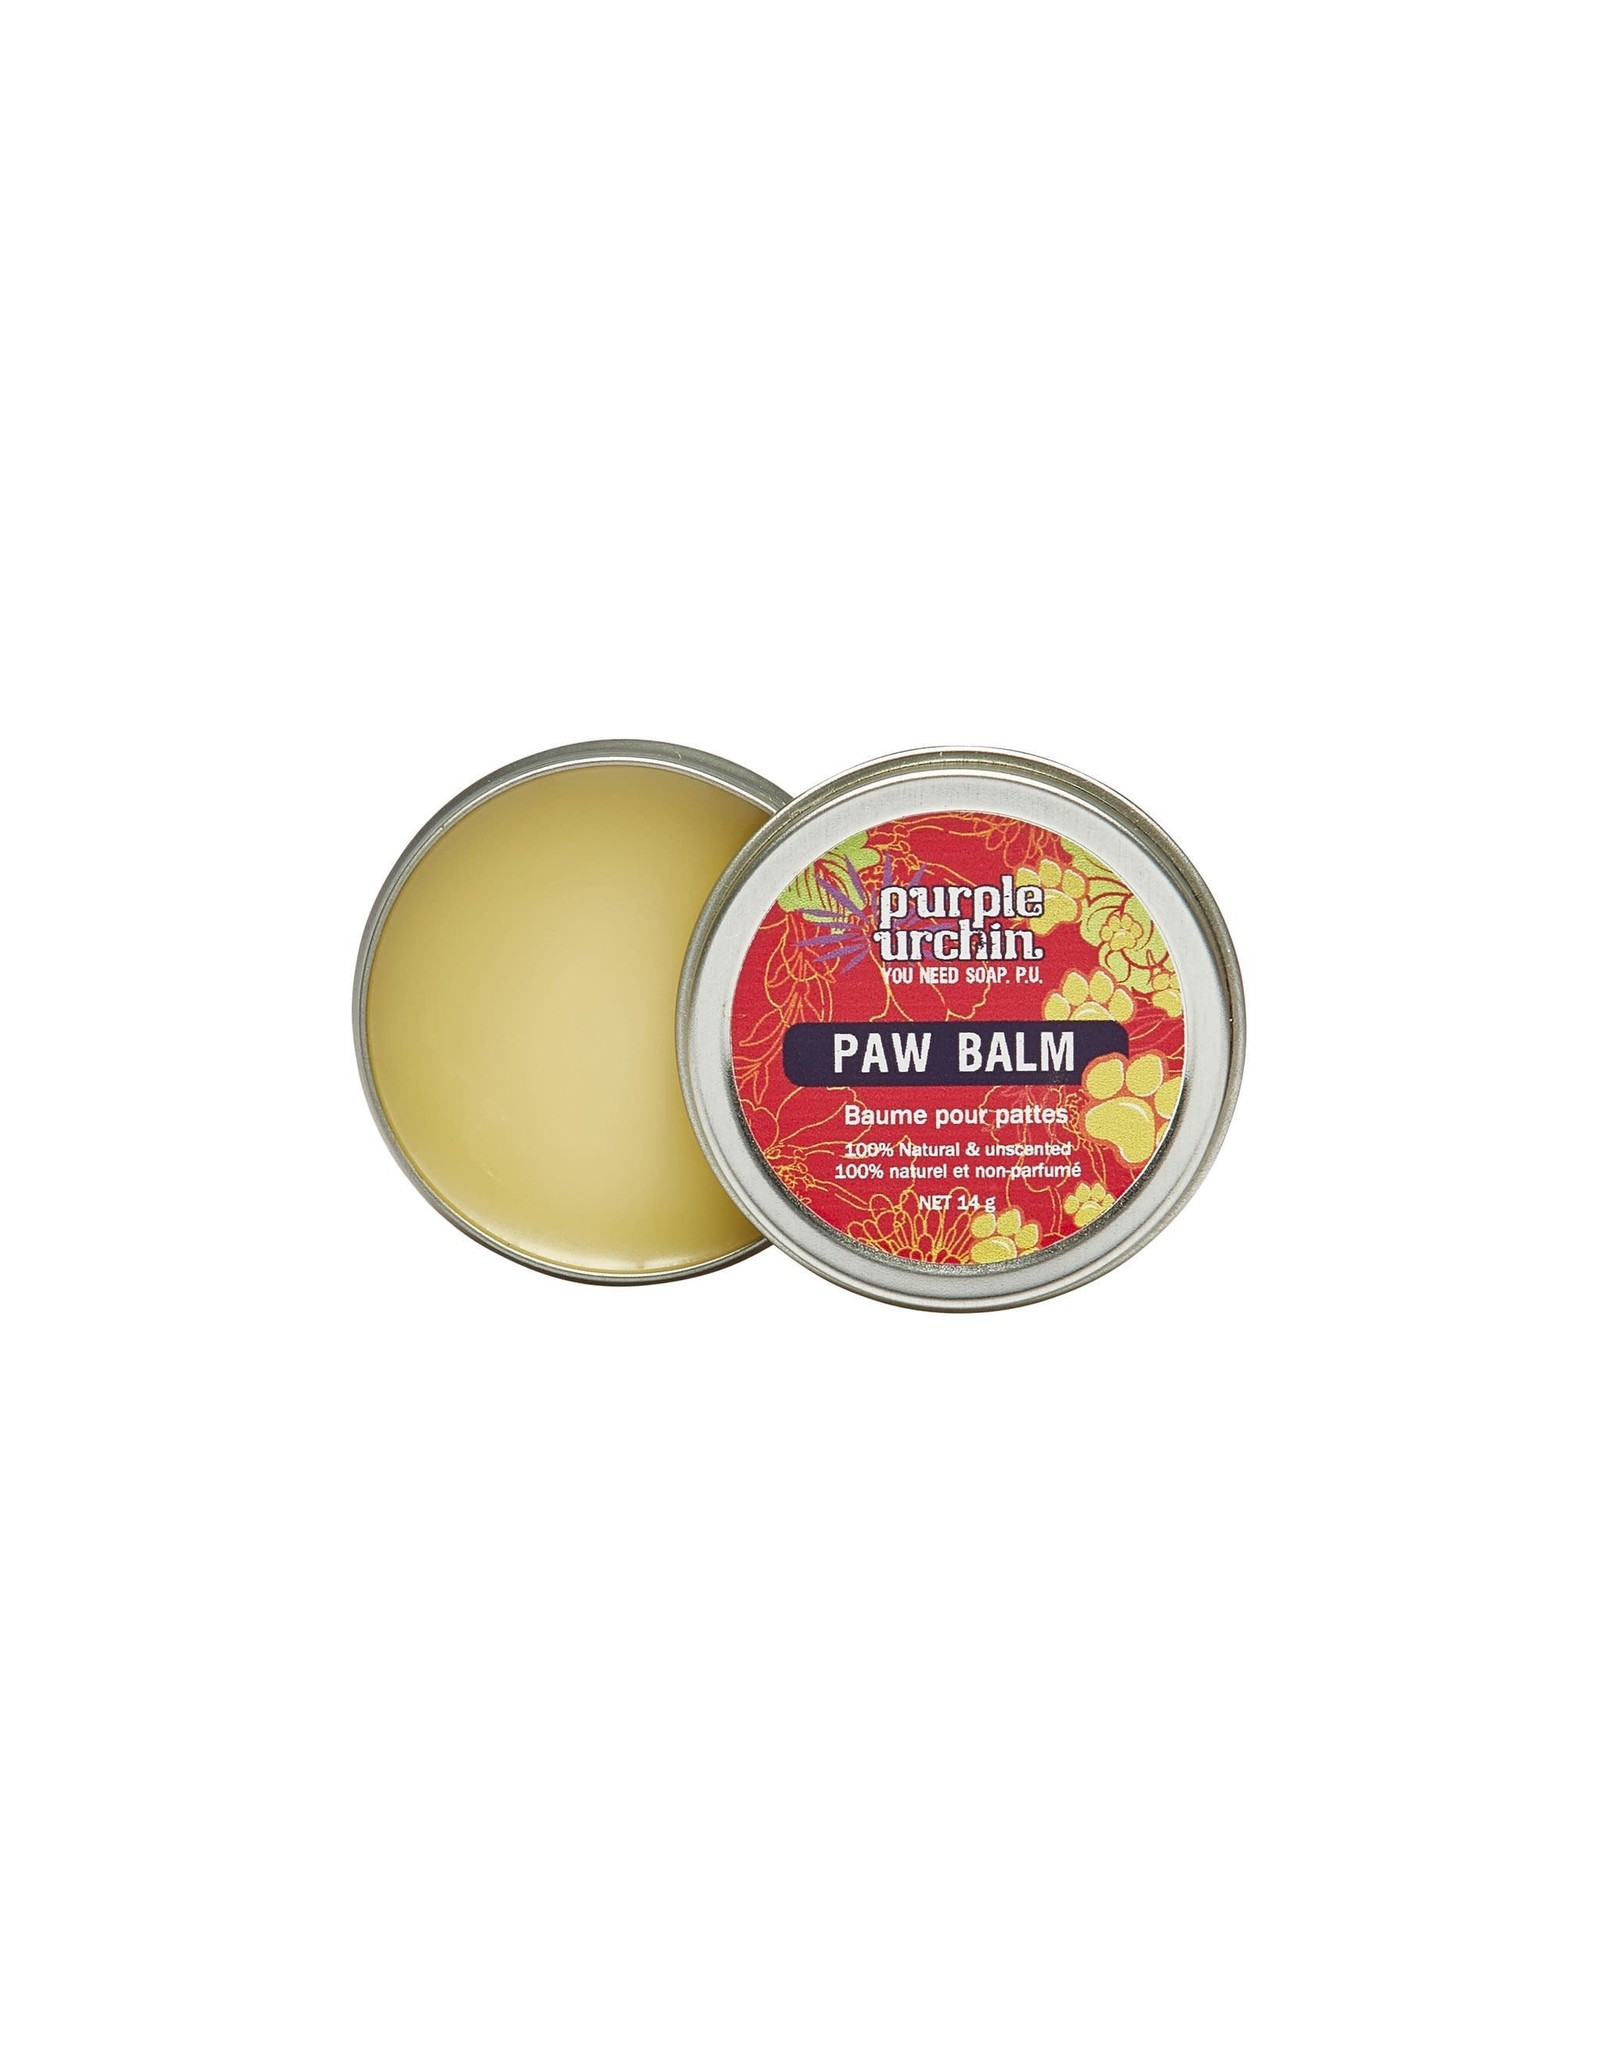 Purple Urchin Purple Urchin Paw Balm